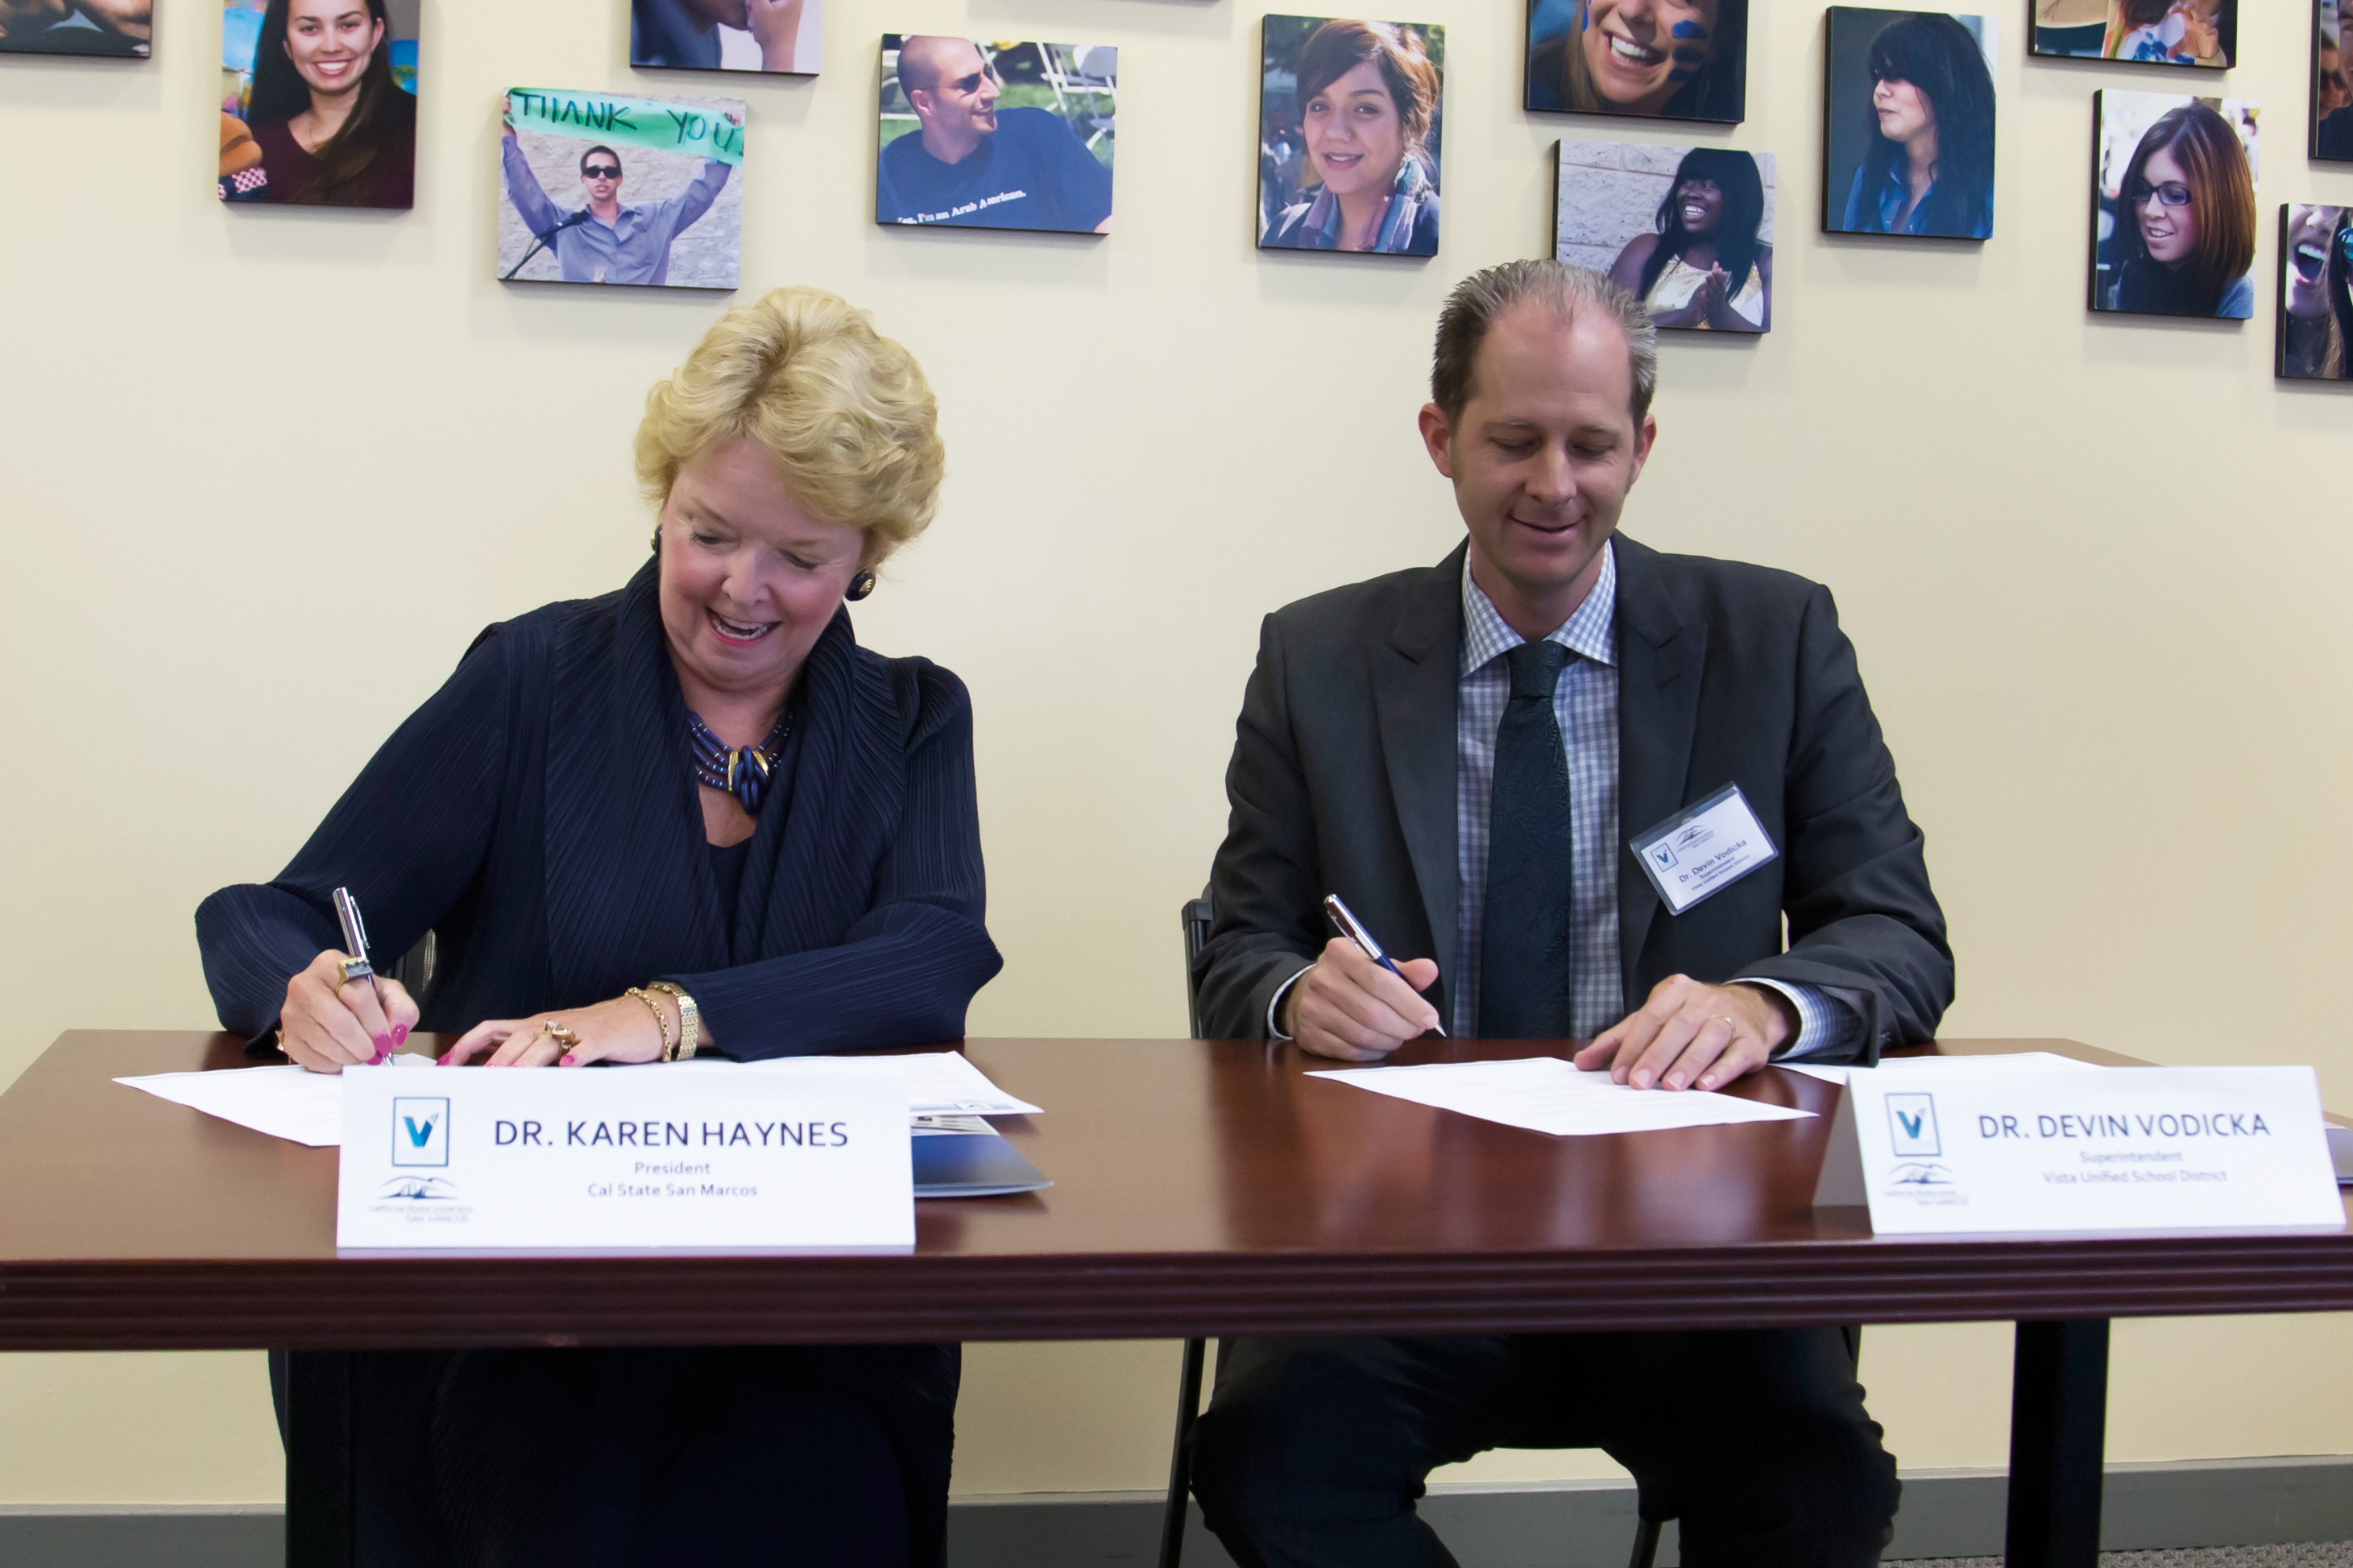 The Alliance to Accelerate Excellence in Education